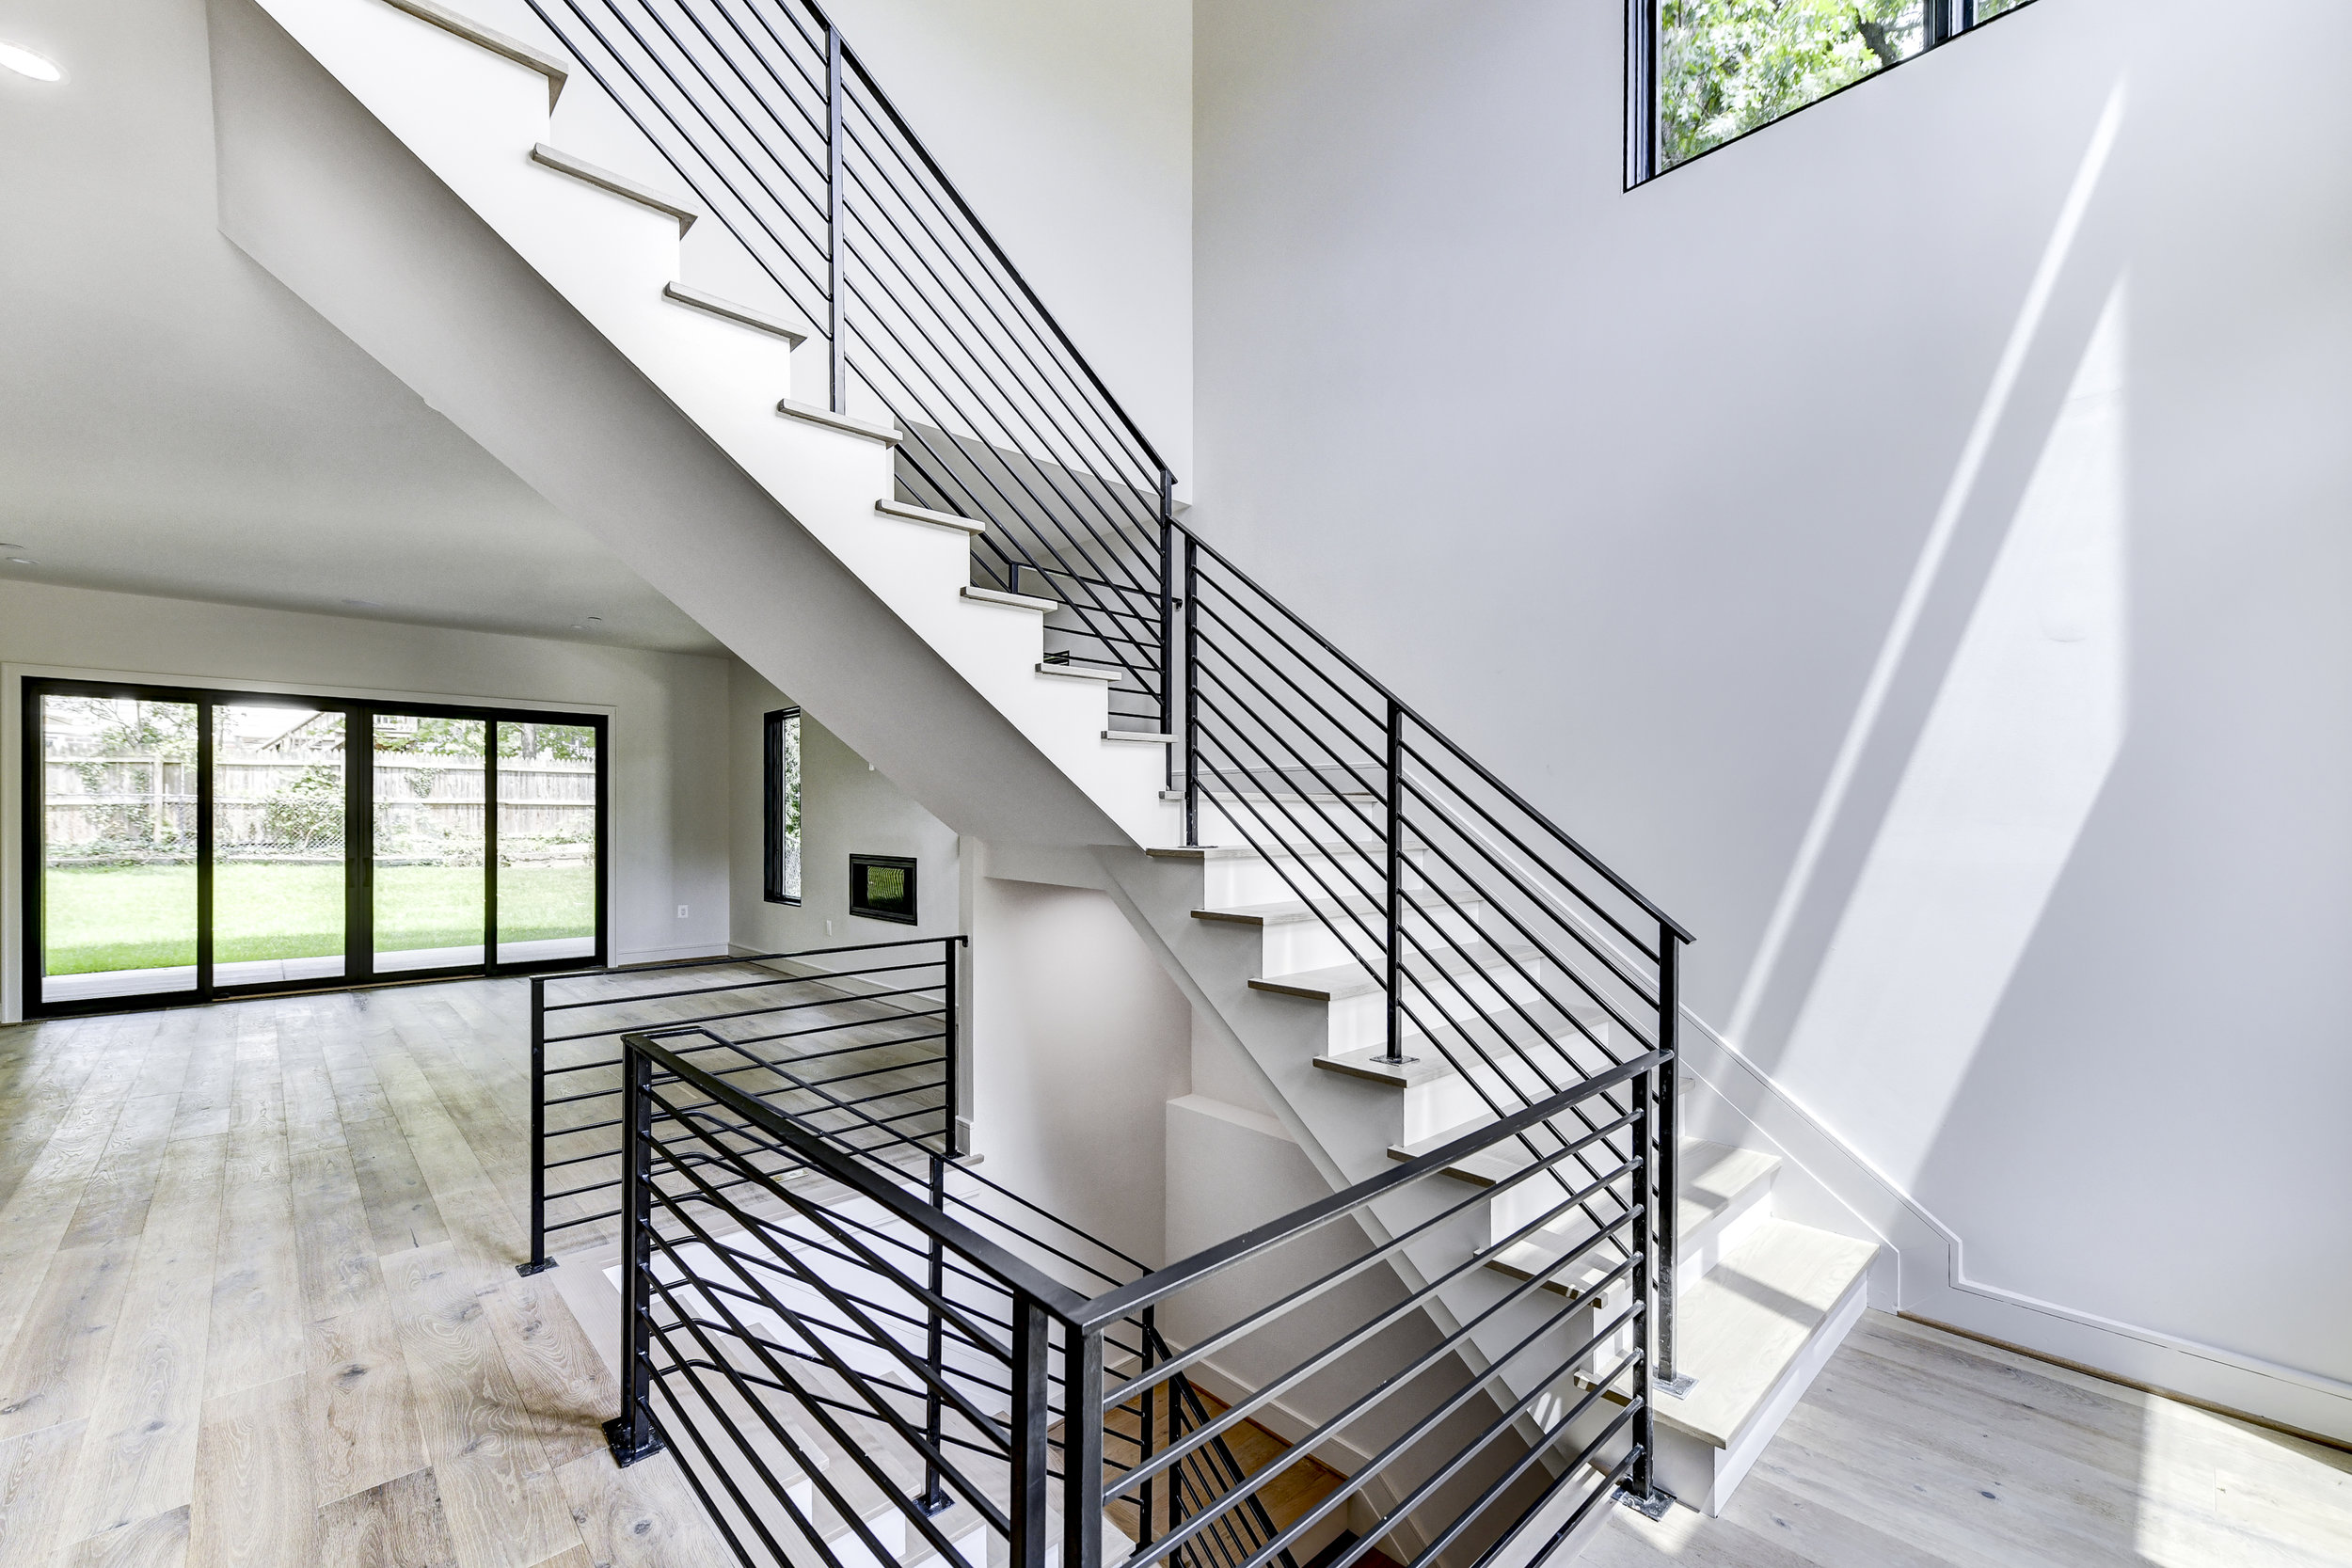 stair case with family view.jpg